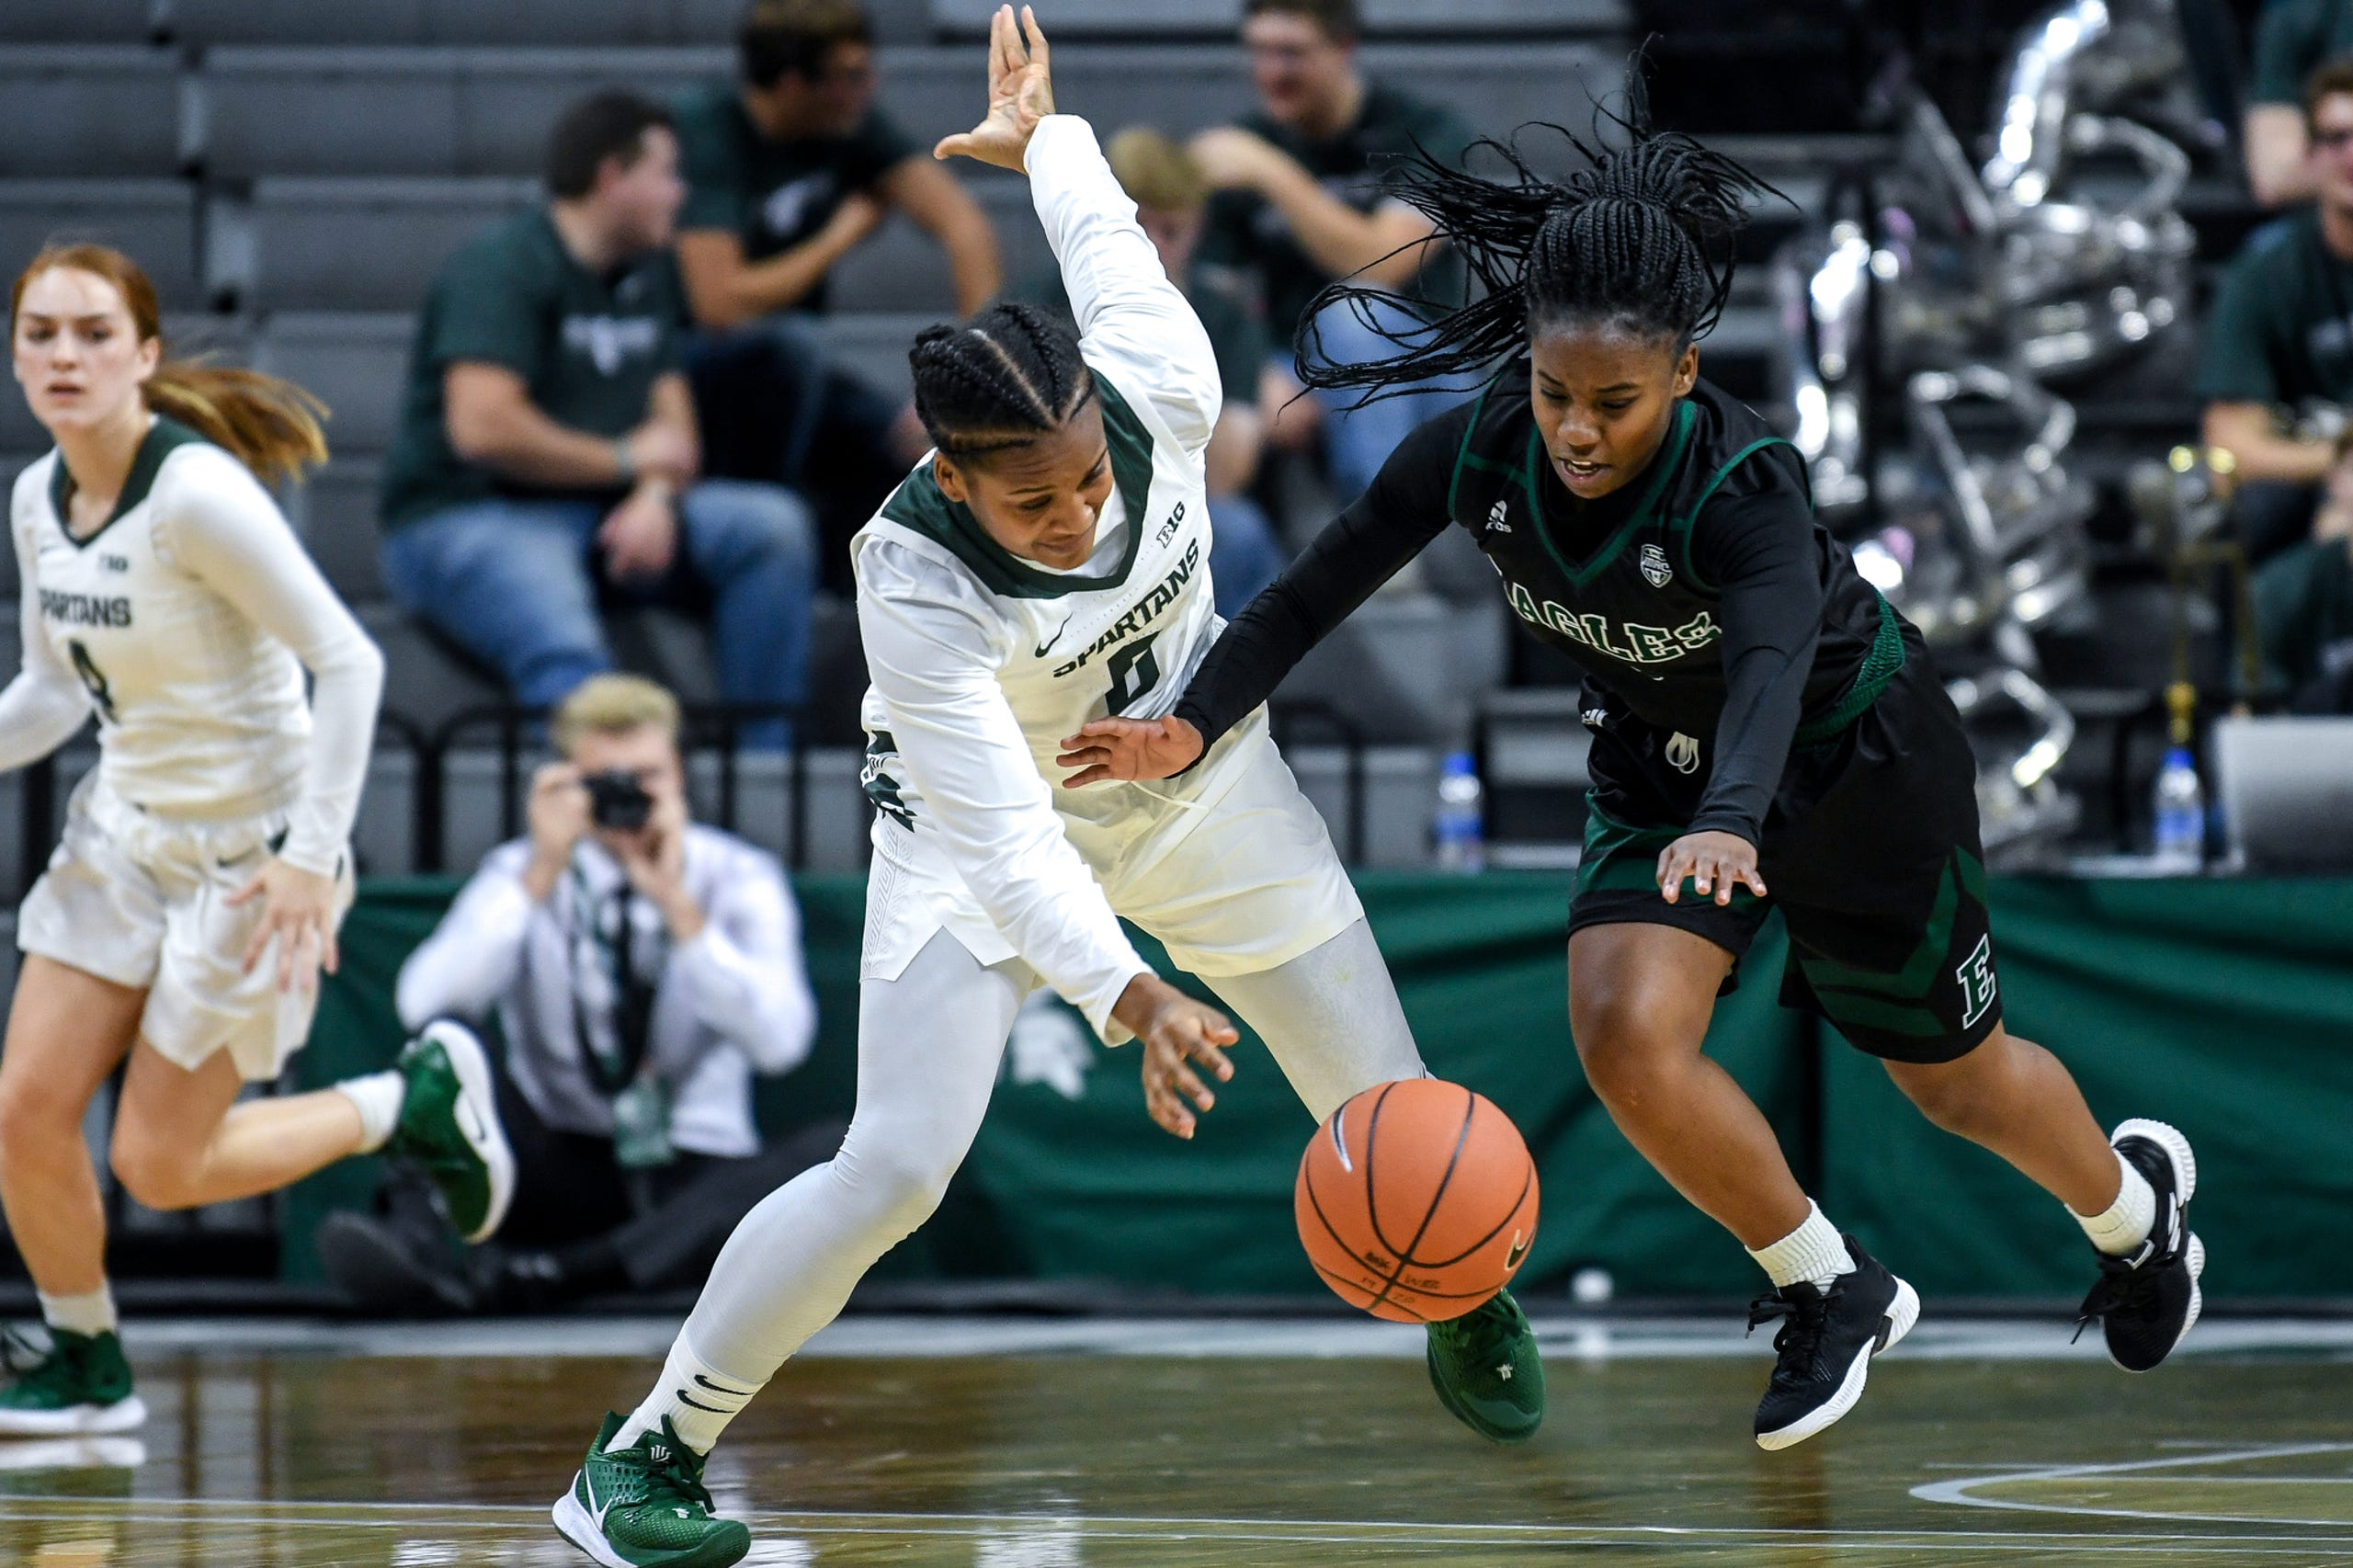 Michigan State's Shay Colley, left, is fouled by Eastern Michigan's Aaliyah Stanley during the fourth quarter on Tuesday, Nov. 5, 2019, at the Breslin Center in East Lansing.